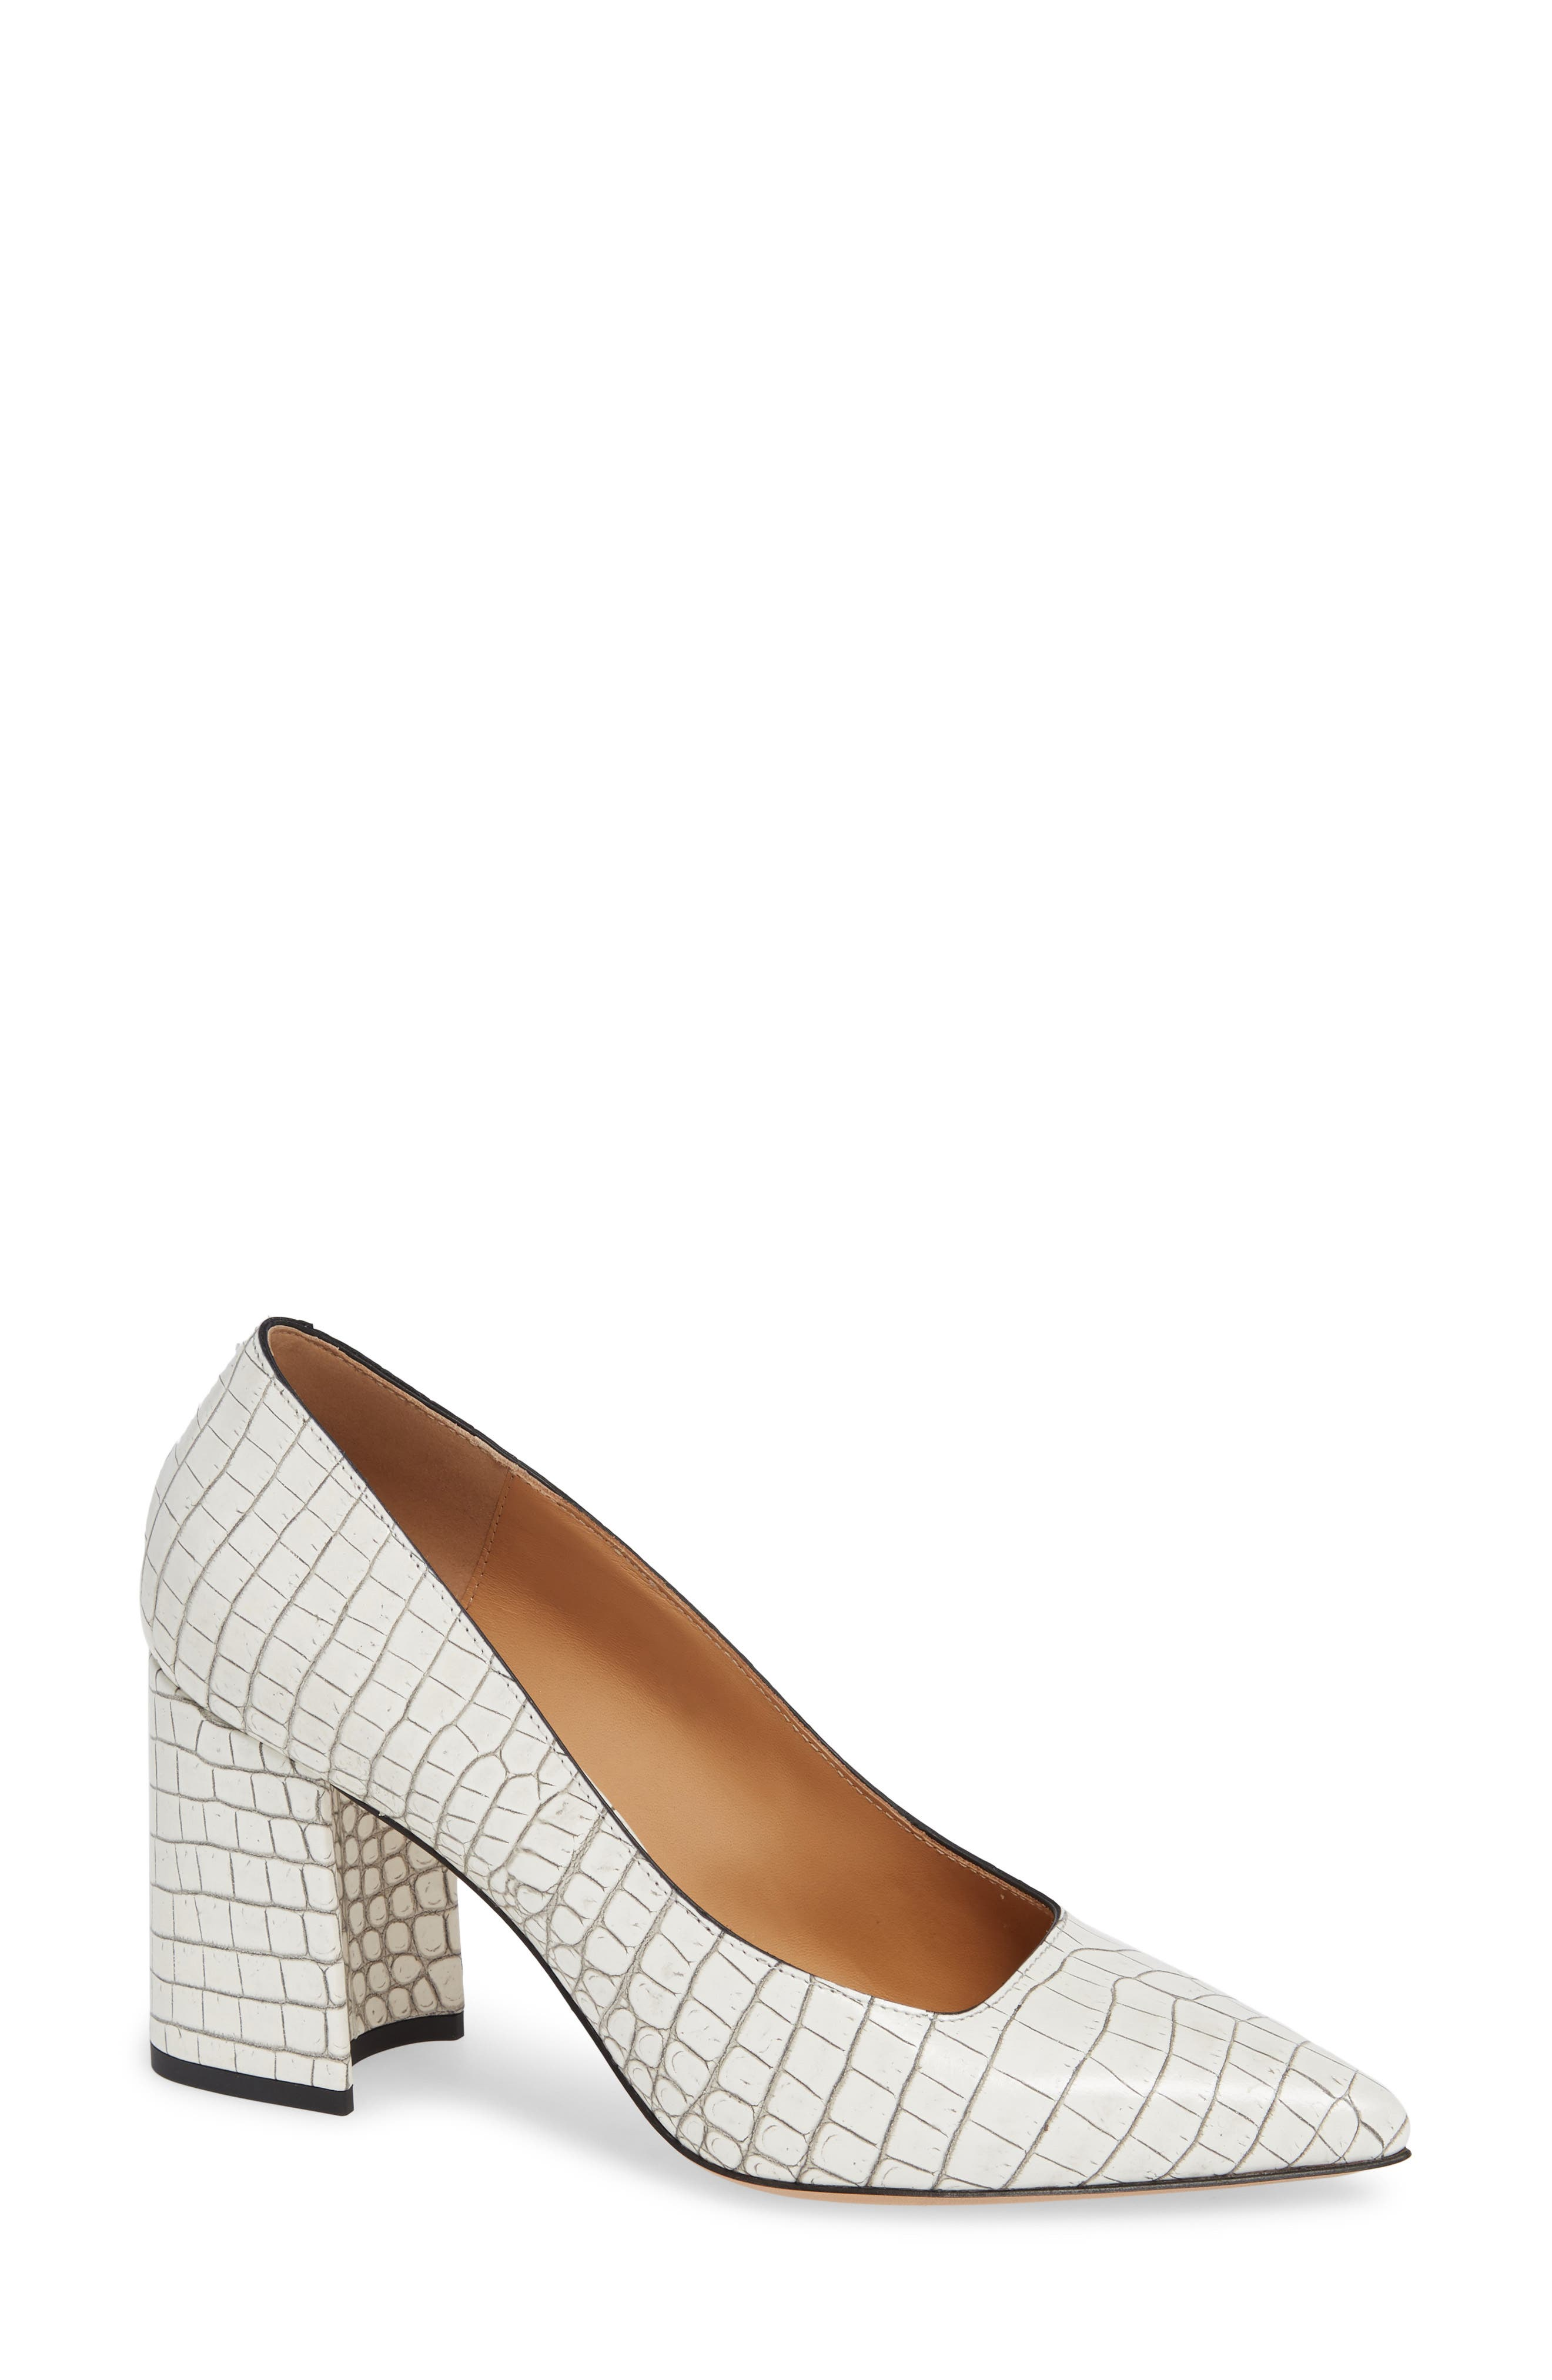 Croc Embossed Pointy Toe Pump in White